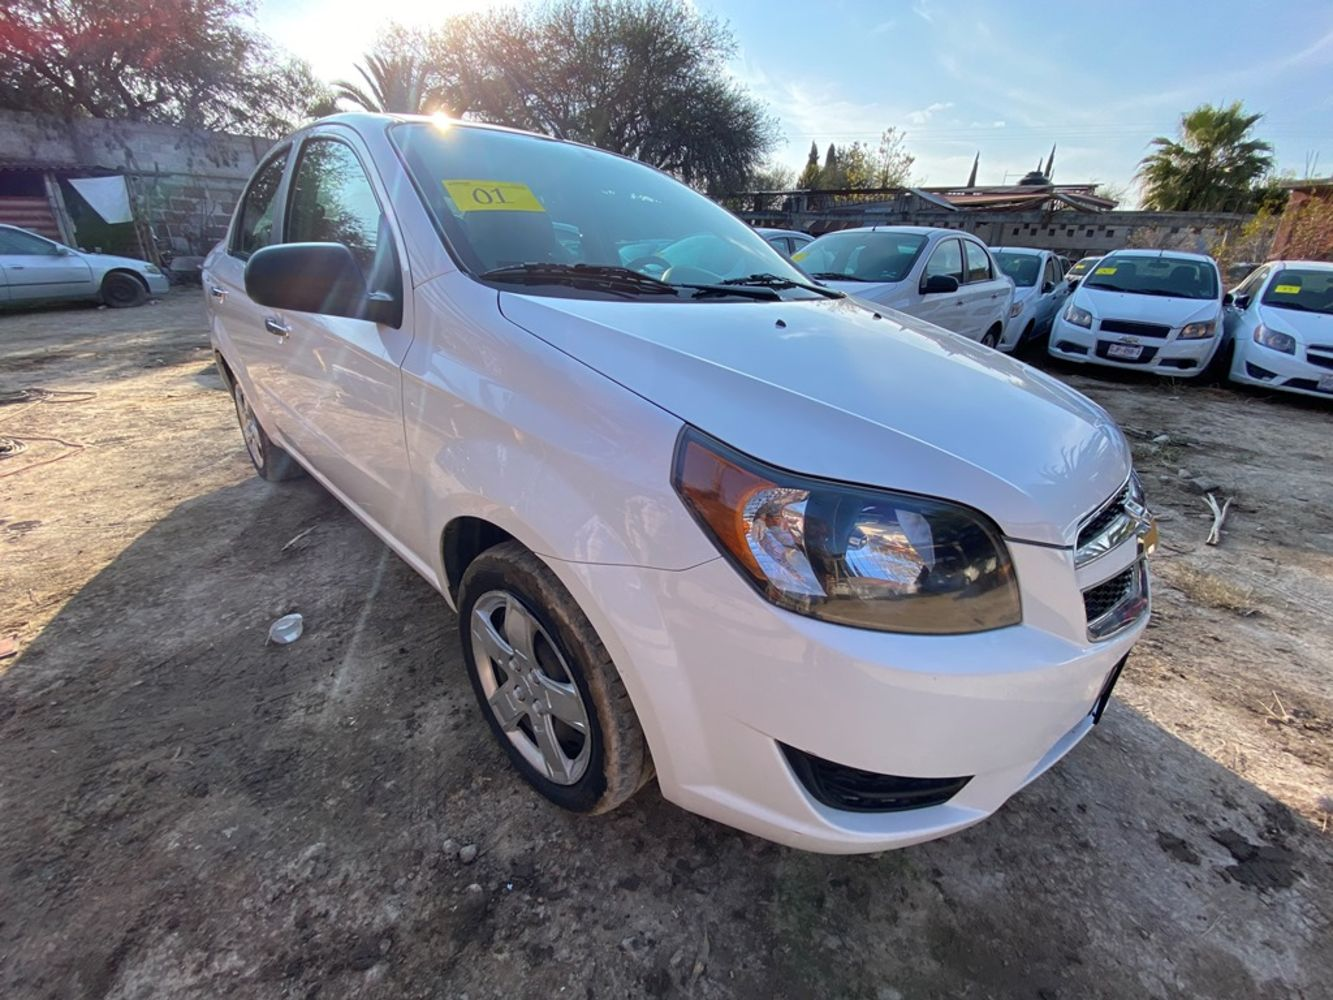 More than 80 Chevrolets Aveo in great conditions! Models 2014 to 2018.